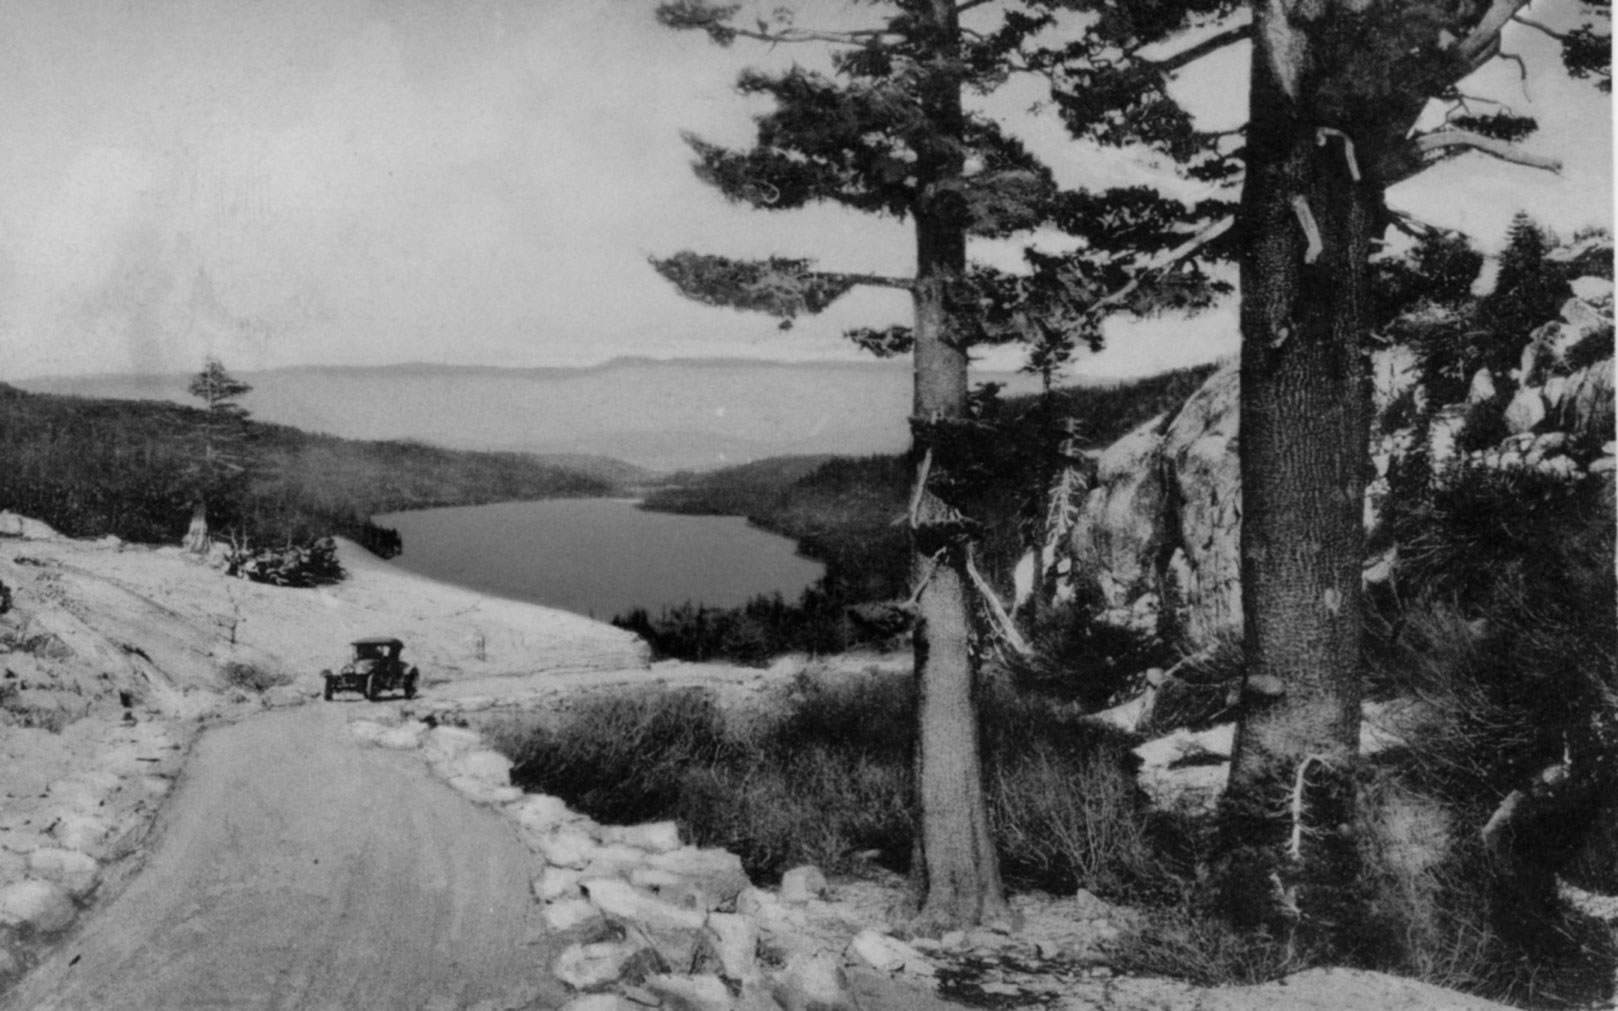 Lincoln Highway Donner Summit Historical Society